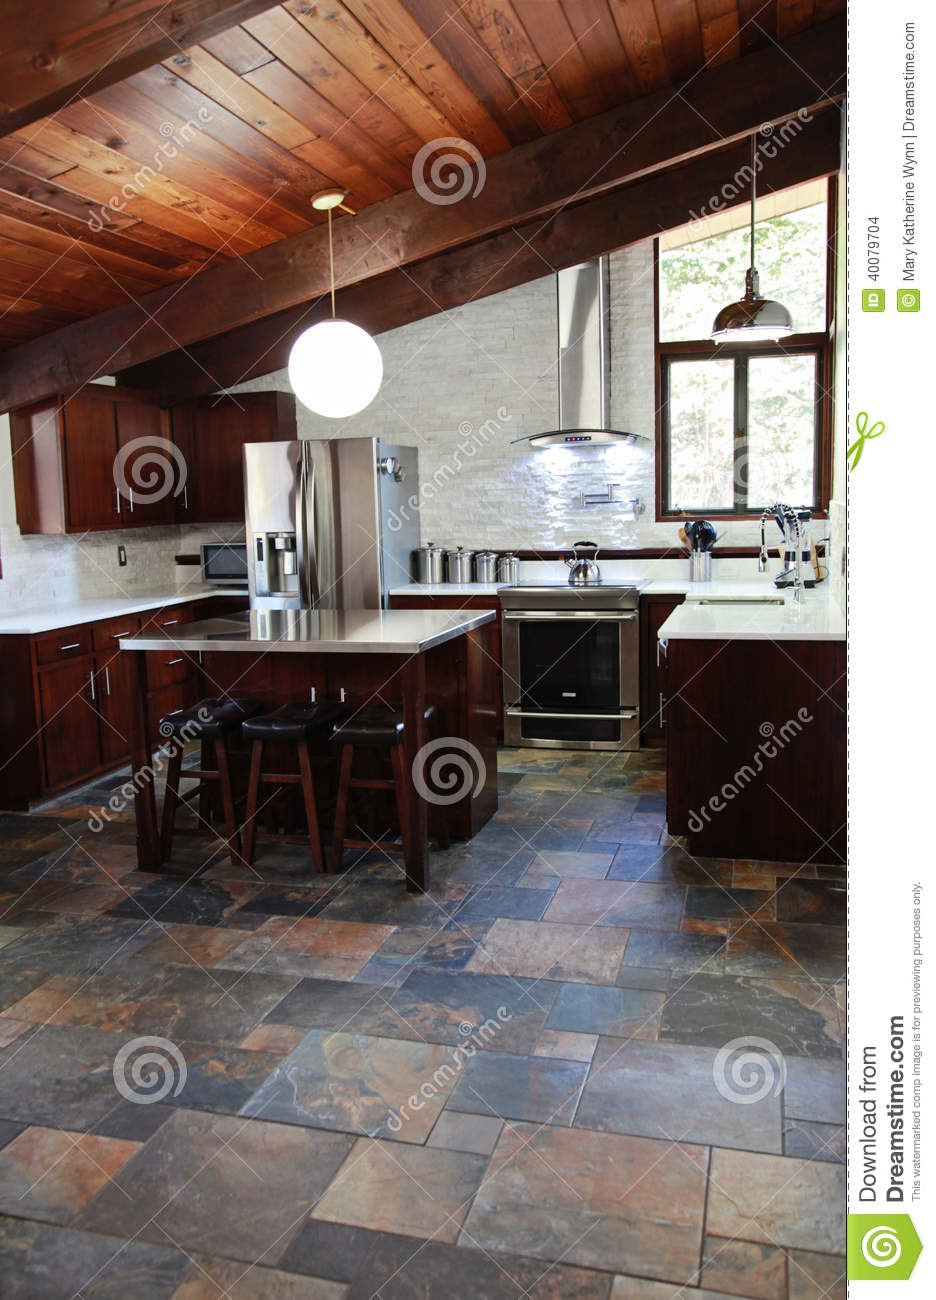 Slate Floors In Kitchen Modern Kitchen Stock Photo Image 40079704